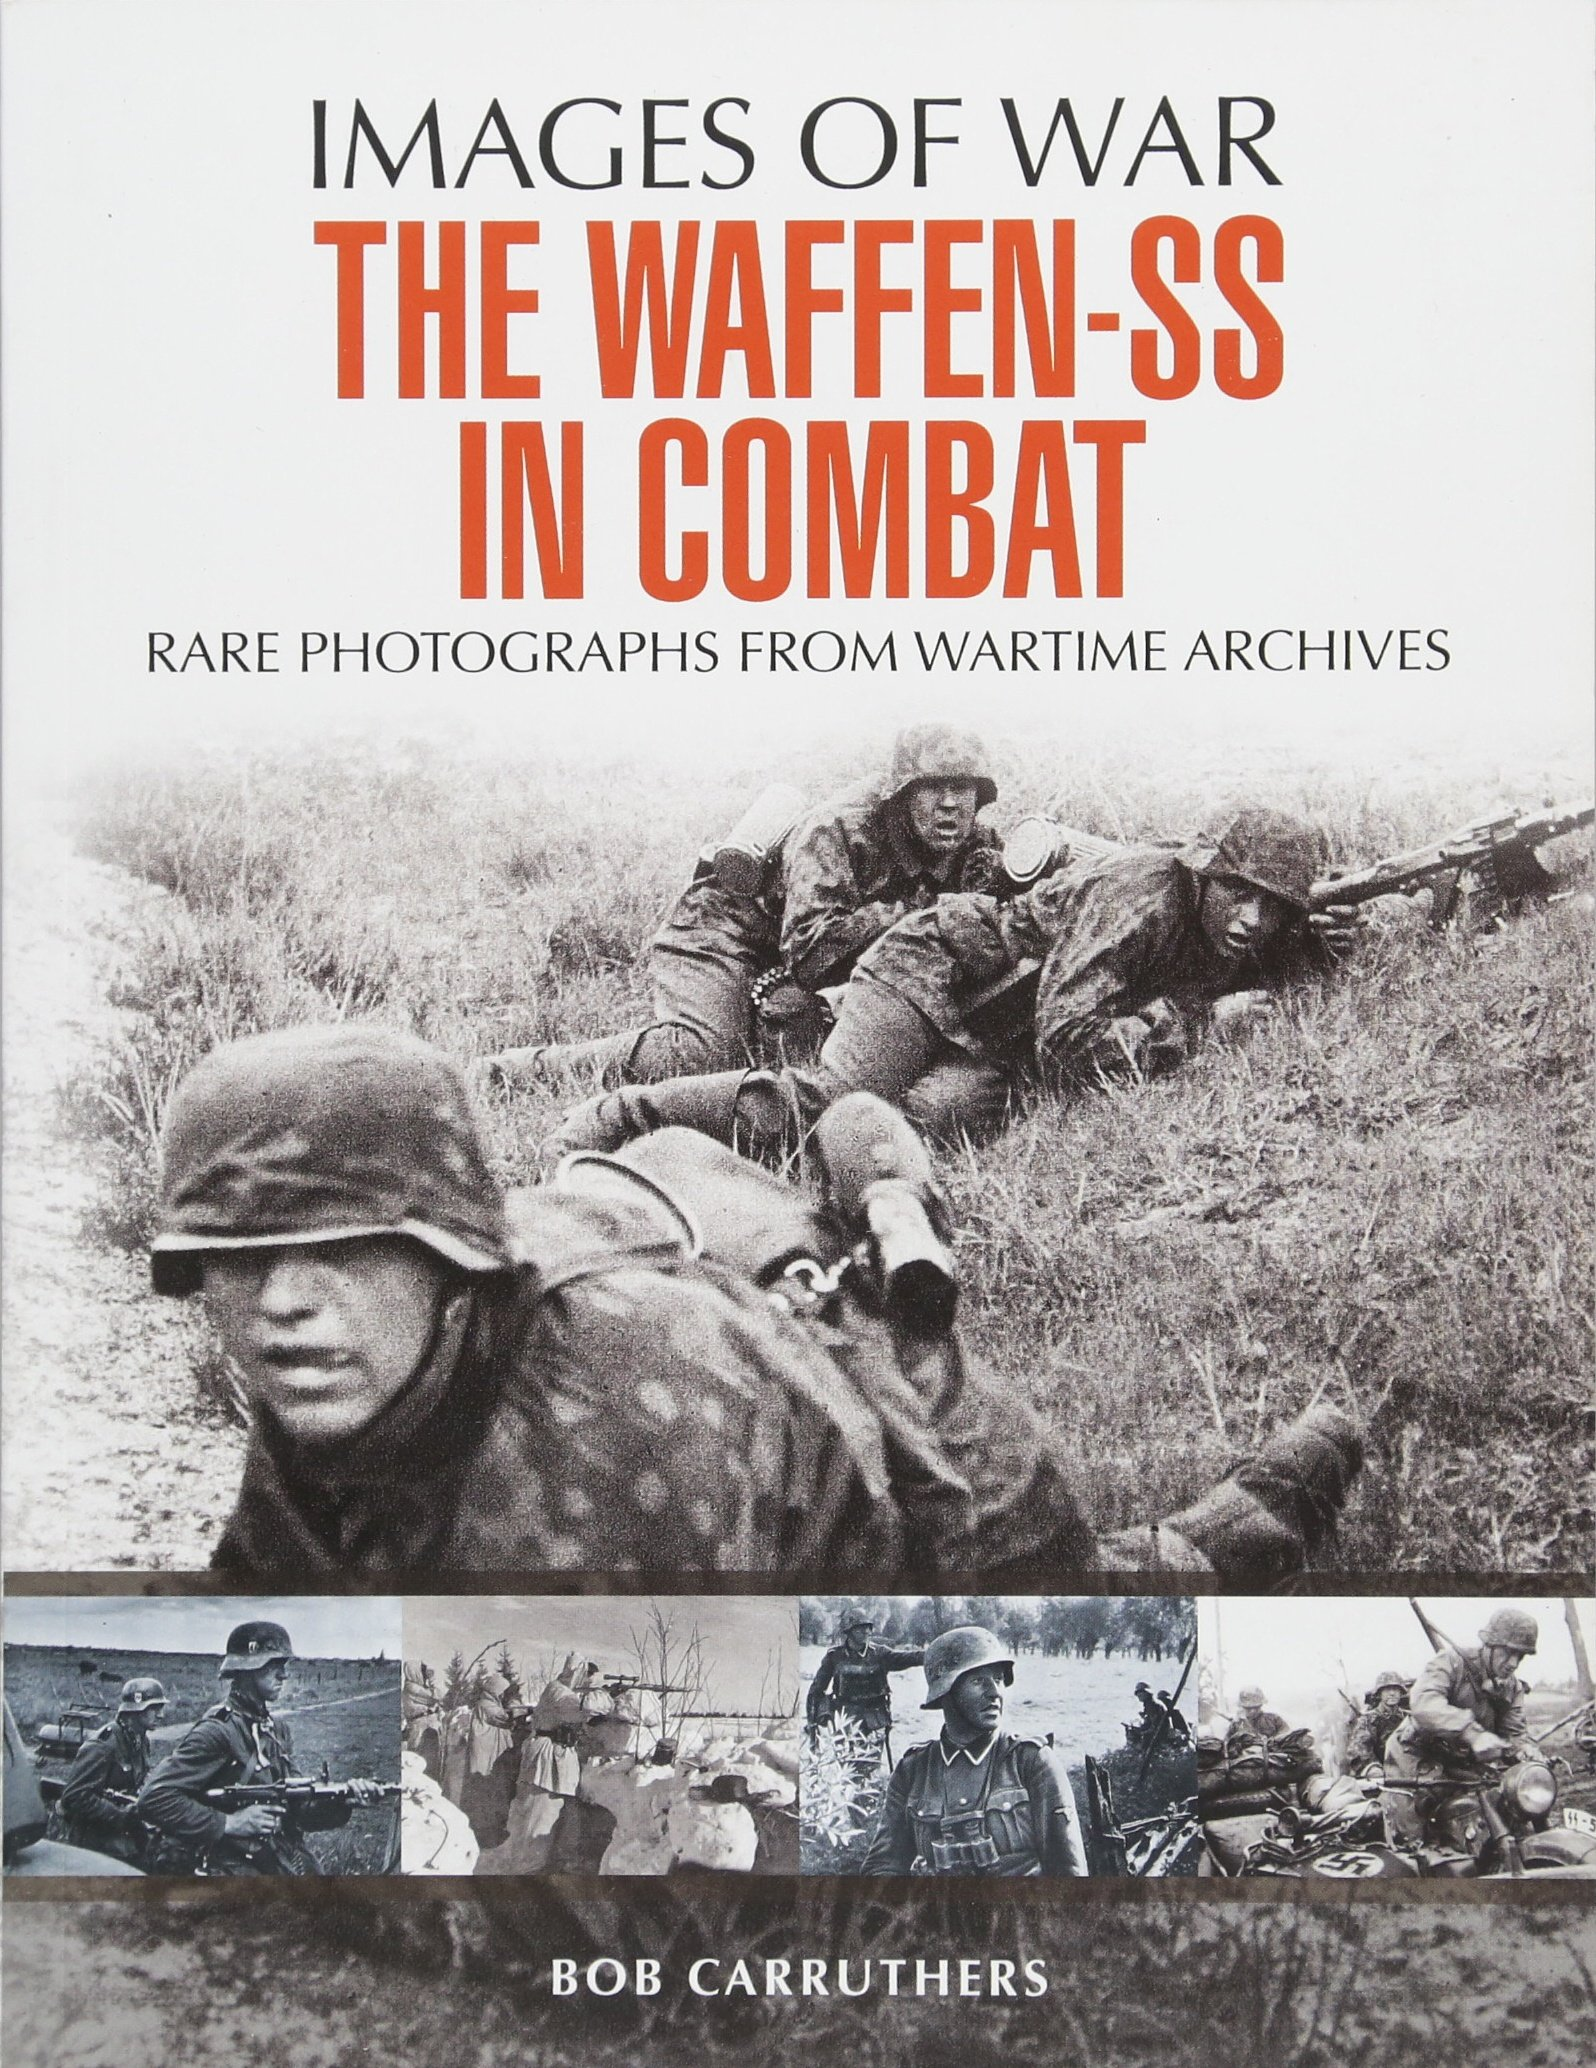 The Waffen SS in Combat: A Photographic History (Images of War) pdf